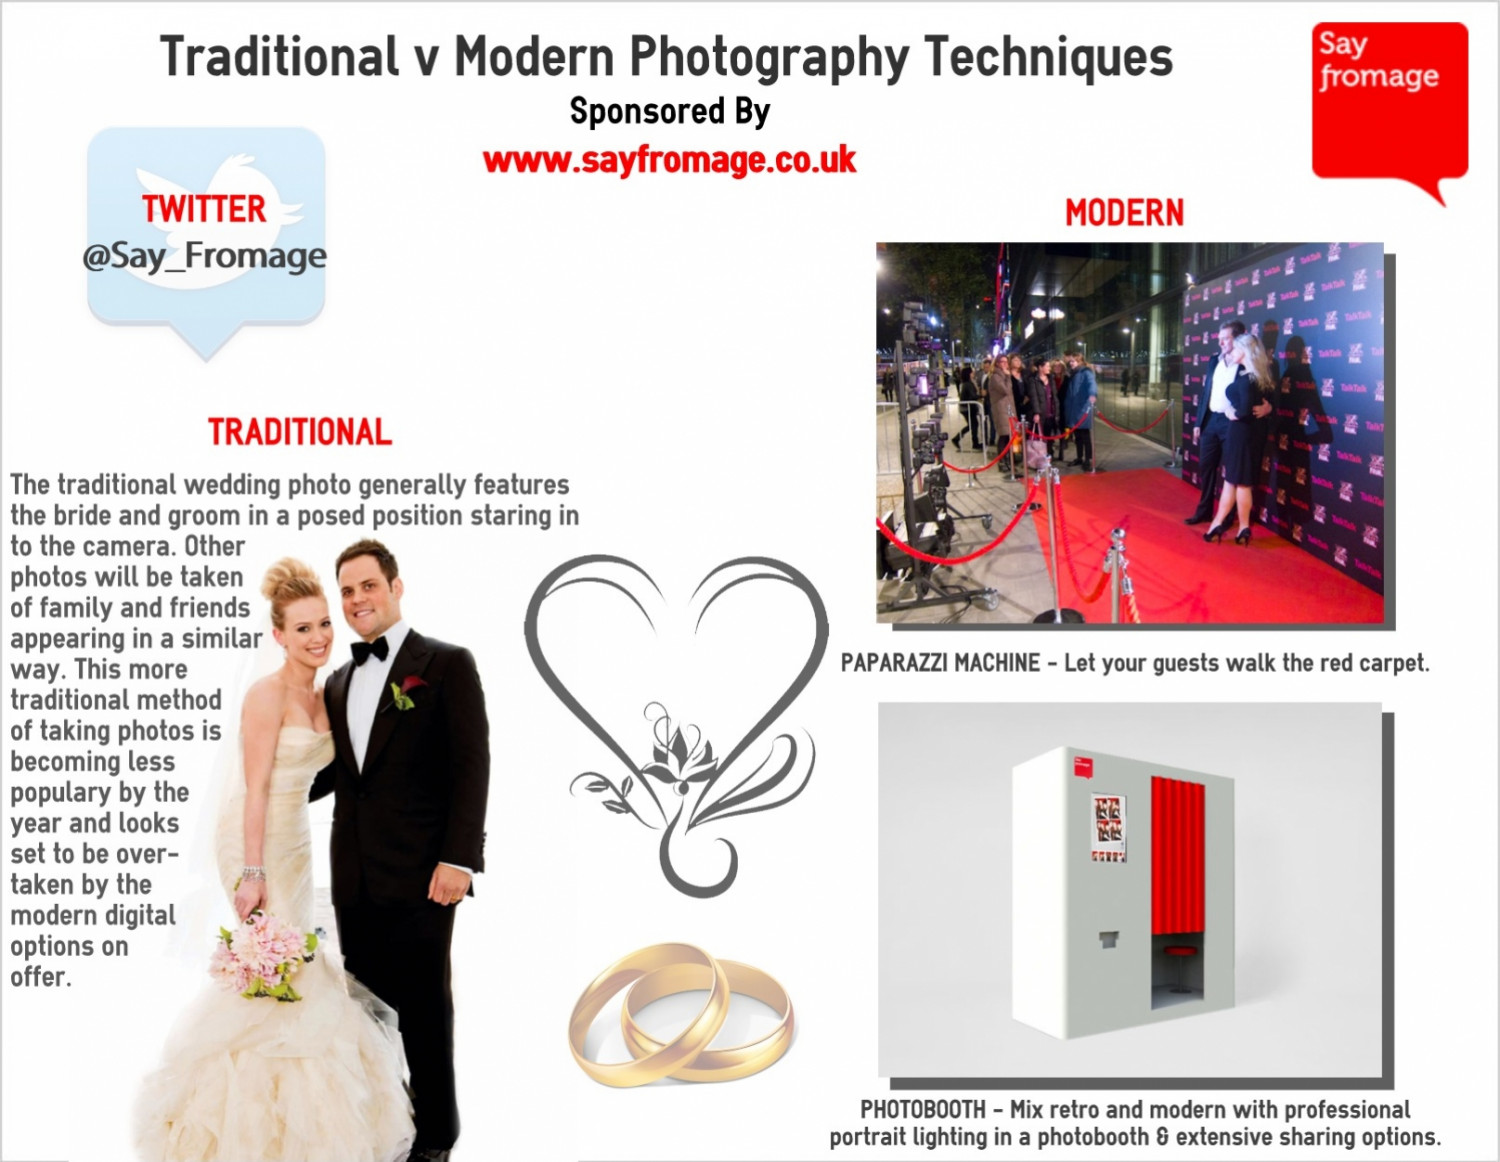 Traditional v Modern Photography Techniques Infographic